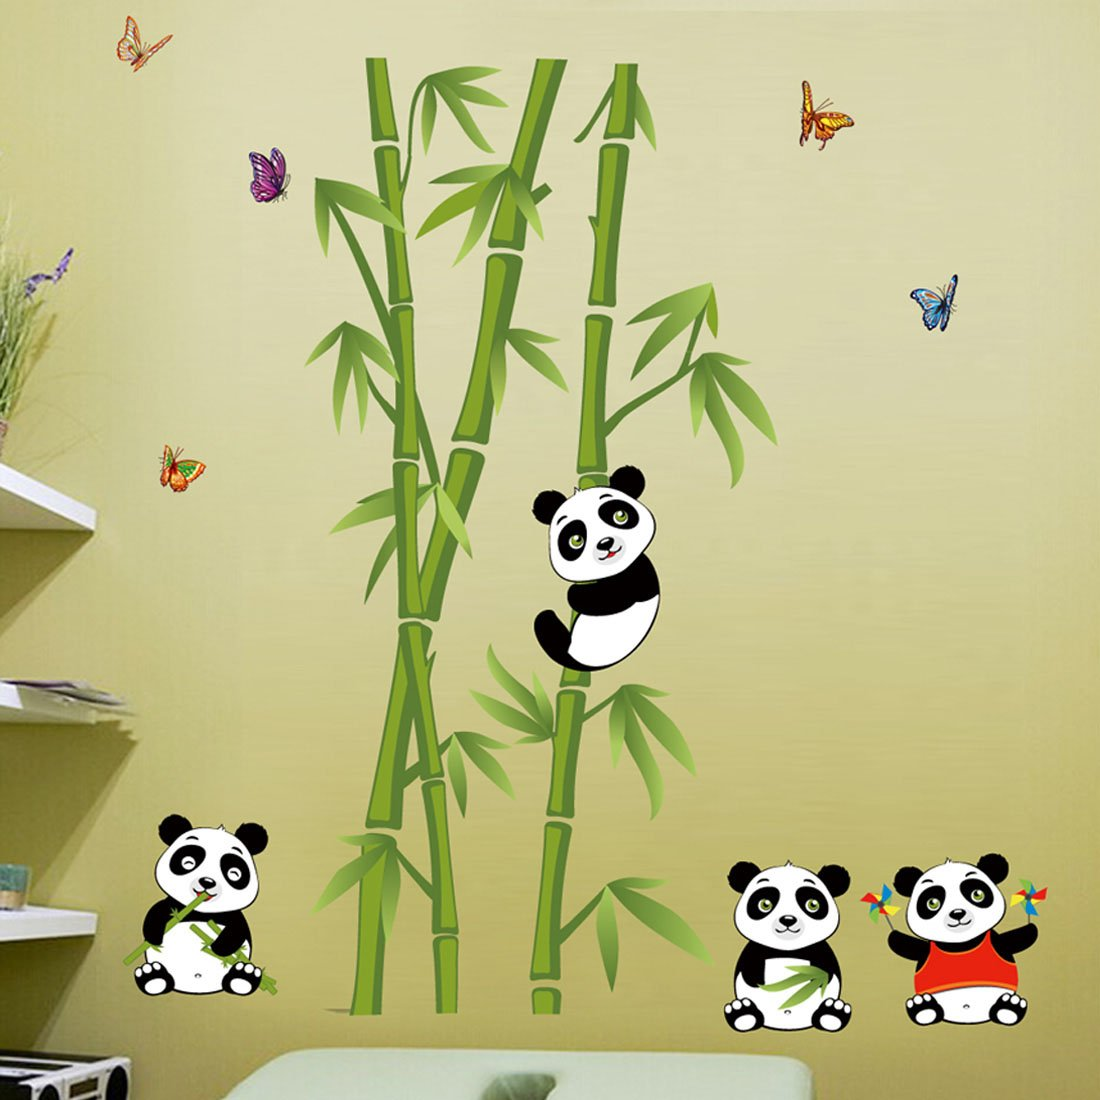 Amazon.com: Wall Decal Lovely Pandas Eating Bamboo Home Sticker ...